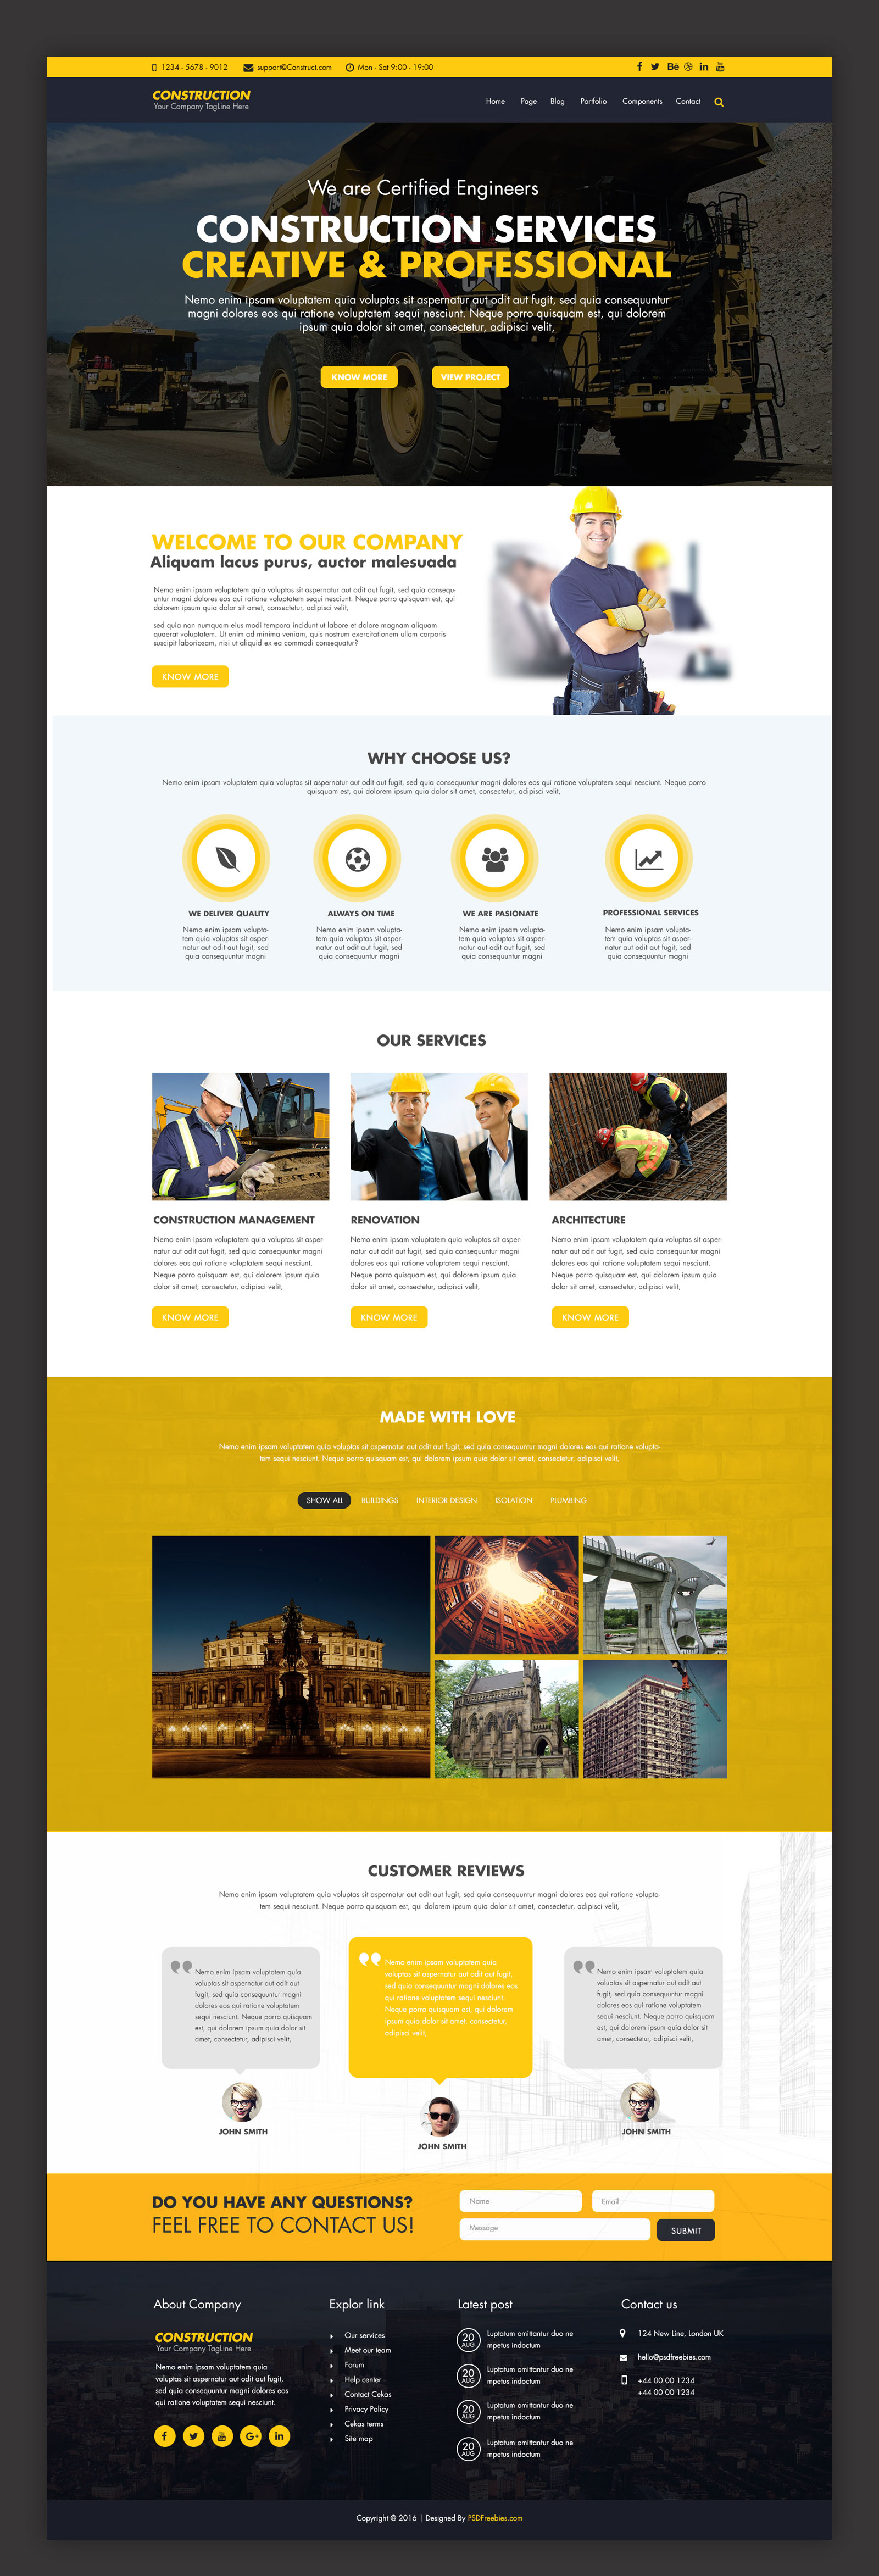 Construction company website template free psd for Website templates free download